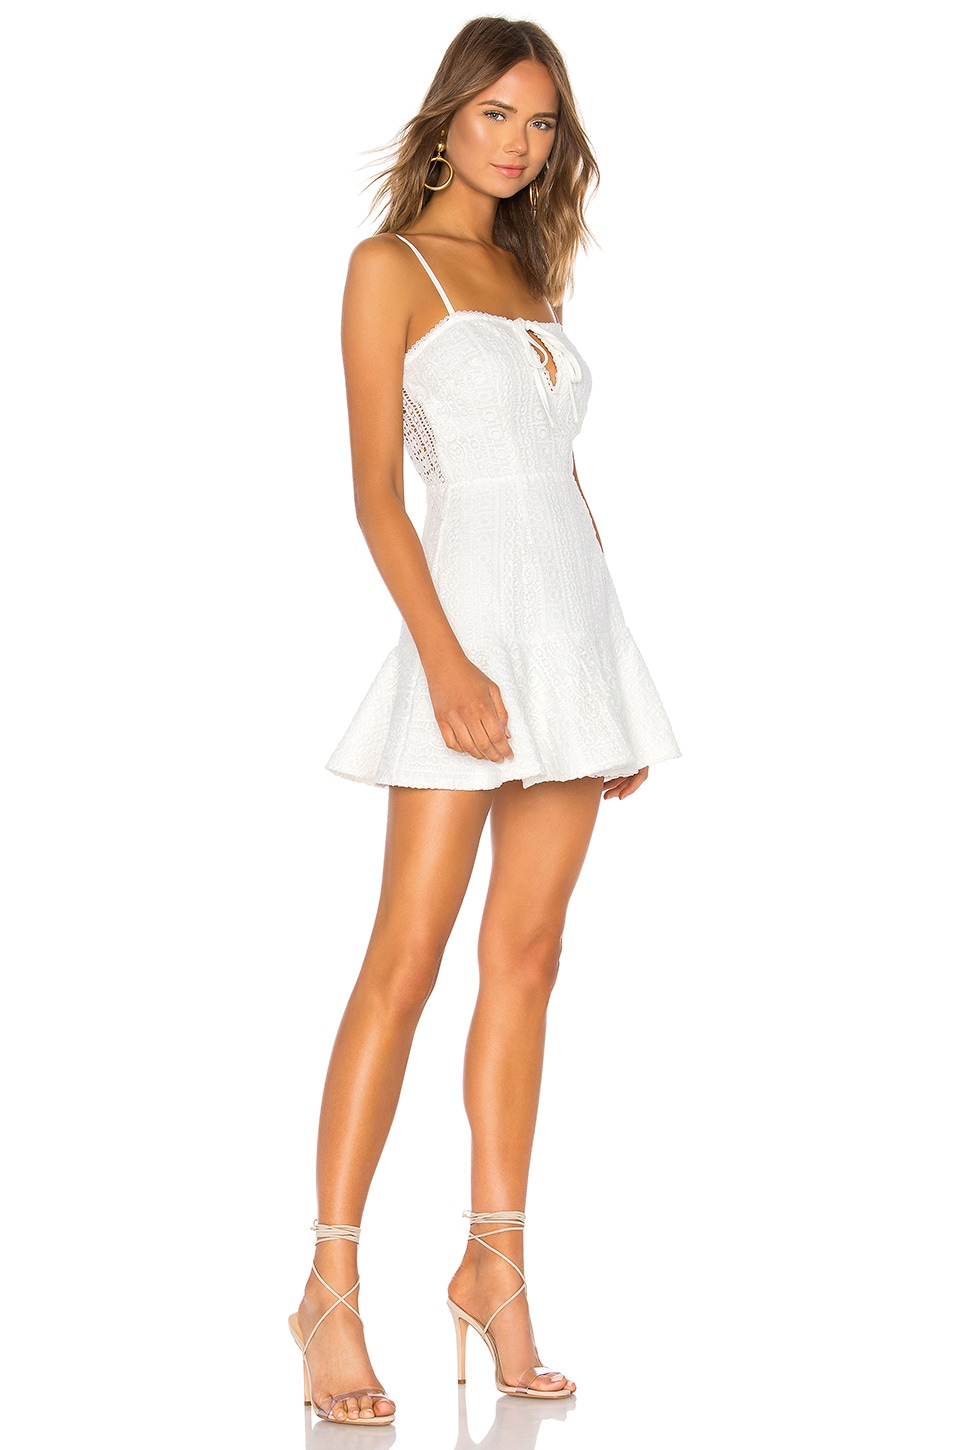 Del Crochet Keyhole Dress             superdown                                                                                                       CA$ 99.24 15